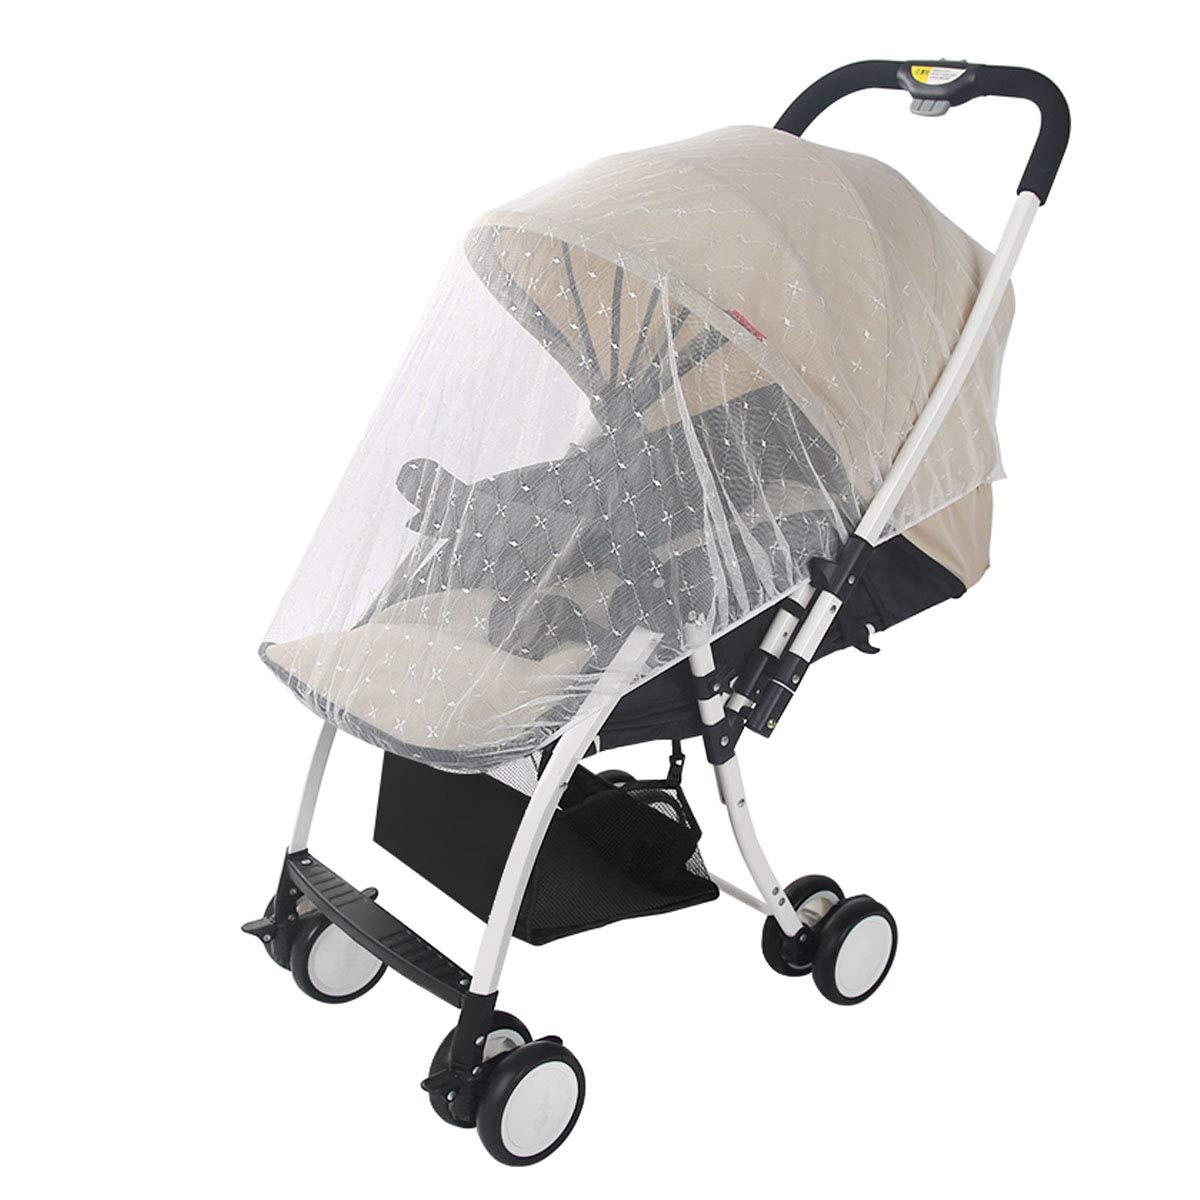 UOMNY Baby Carriage Crib Net Cover Jacquard 1 Pack White for Stroller,Bassinet,Portable and Durable Baby Netting,Infant Protection Against,Toddler Insect Shield Canopy